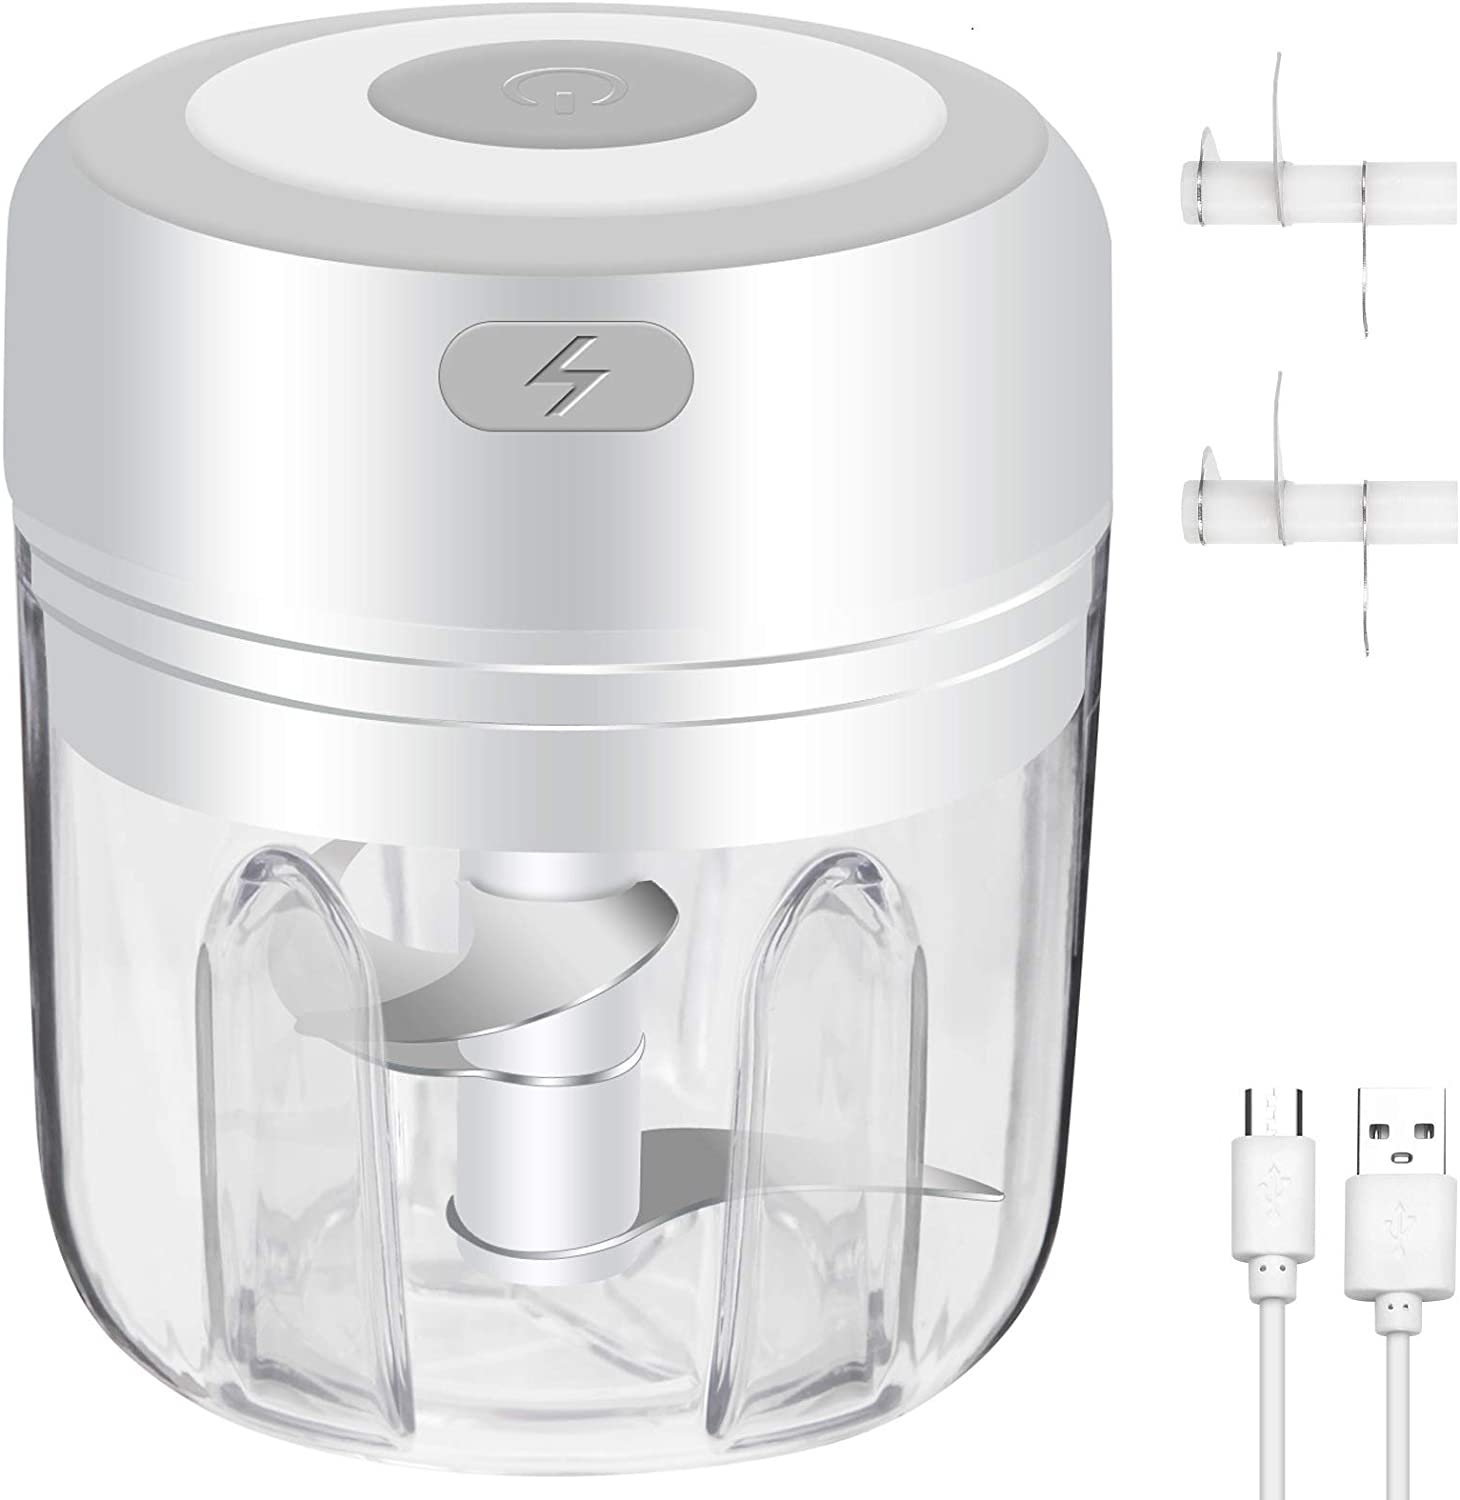 Mini Electric Garlic Chopper, Powerful Mini Food Chopper Mini Baby Food Processor Palm-sized Blender for Beef/Fruits/Vegetables/Garlic/Onion- 2 Blades Included (250ml/ 8.4oz)